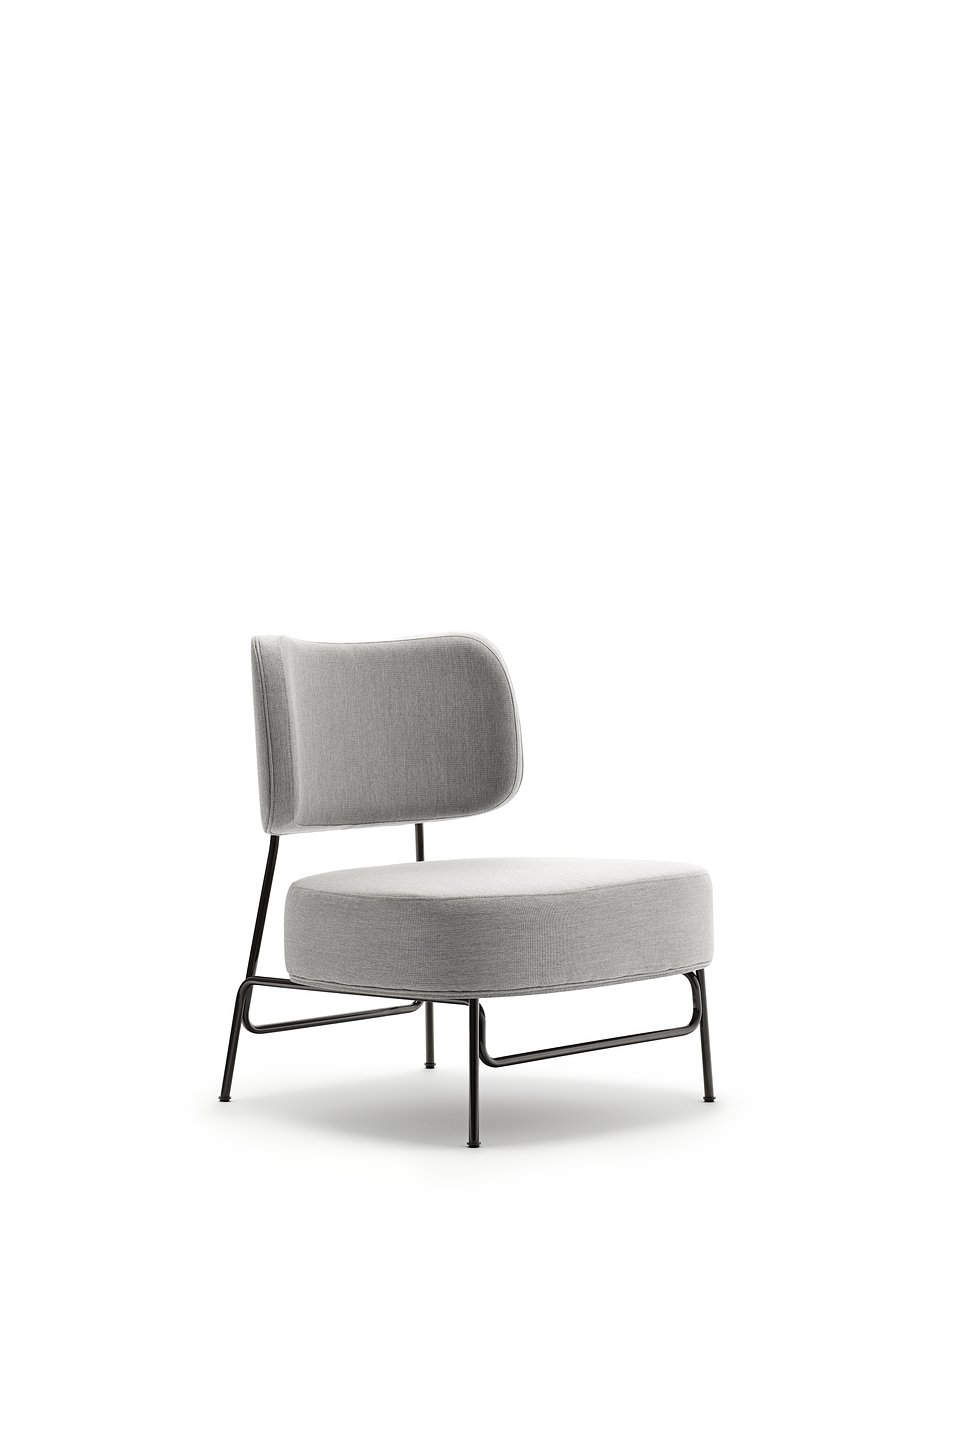 Kapoor Collection for Annud by Santiago Sevillano Studio (3).tif